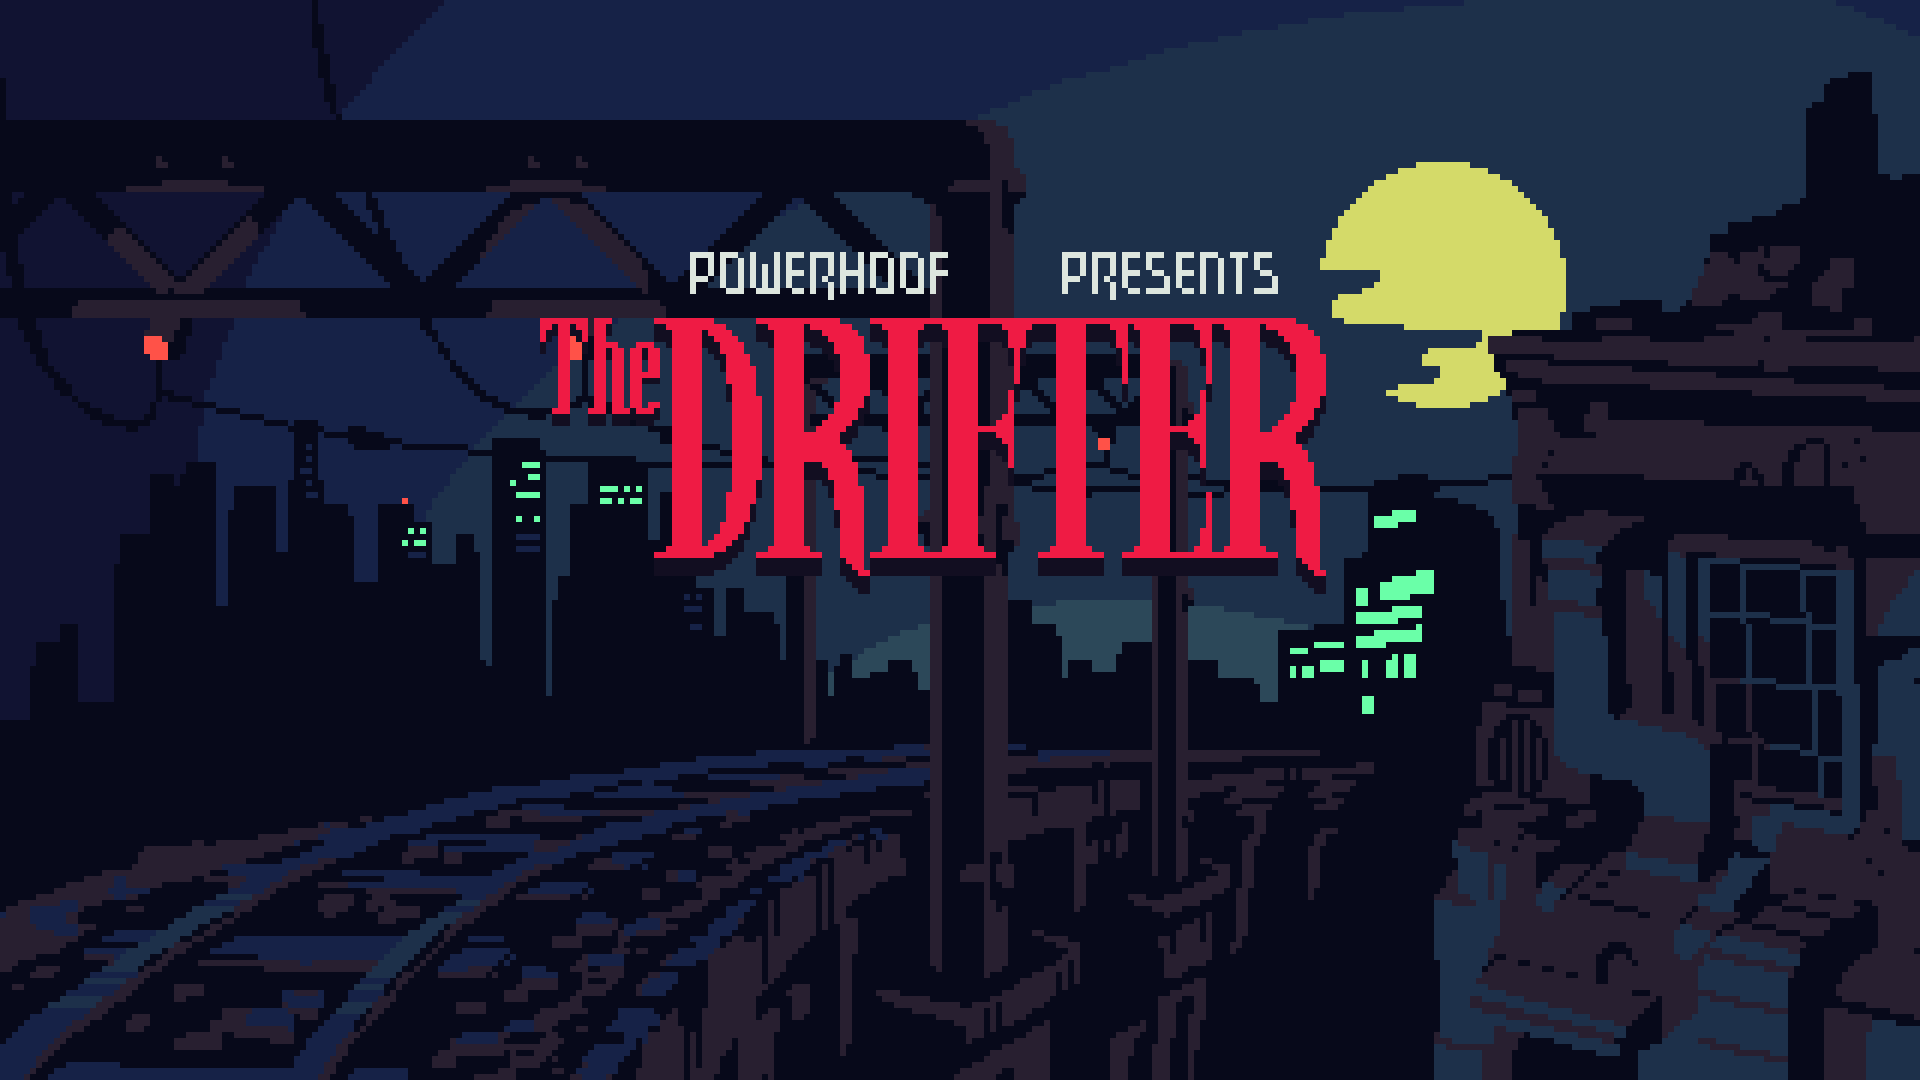 Interview with Powerhoof - The Drifter